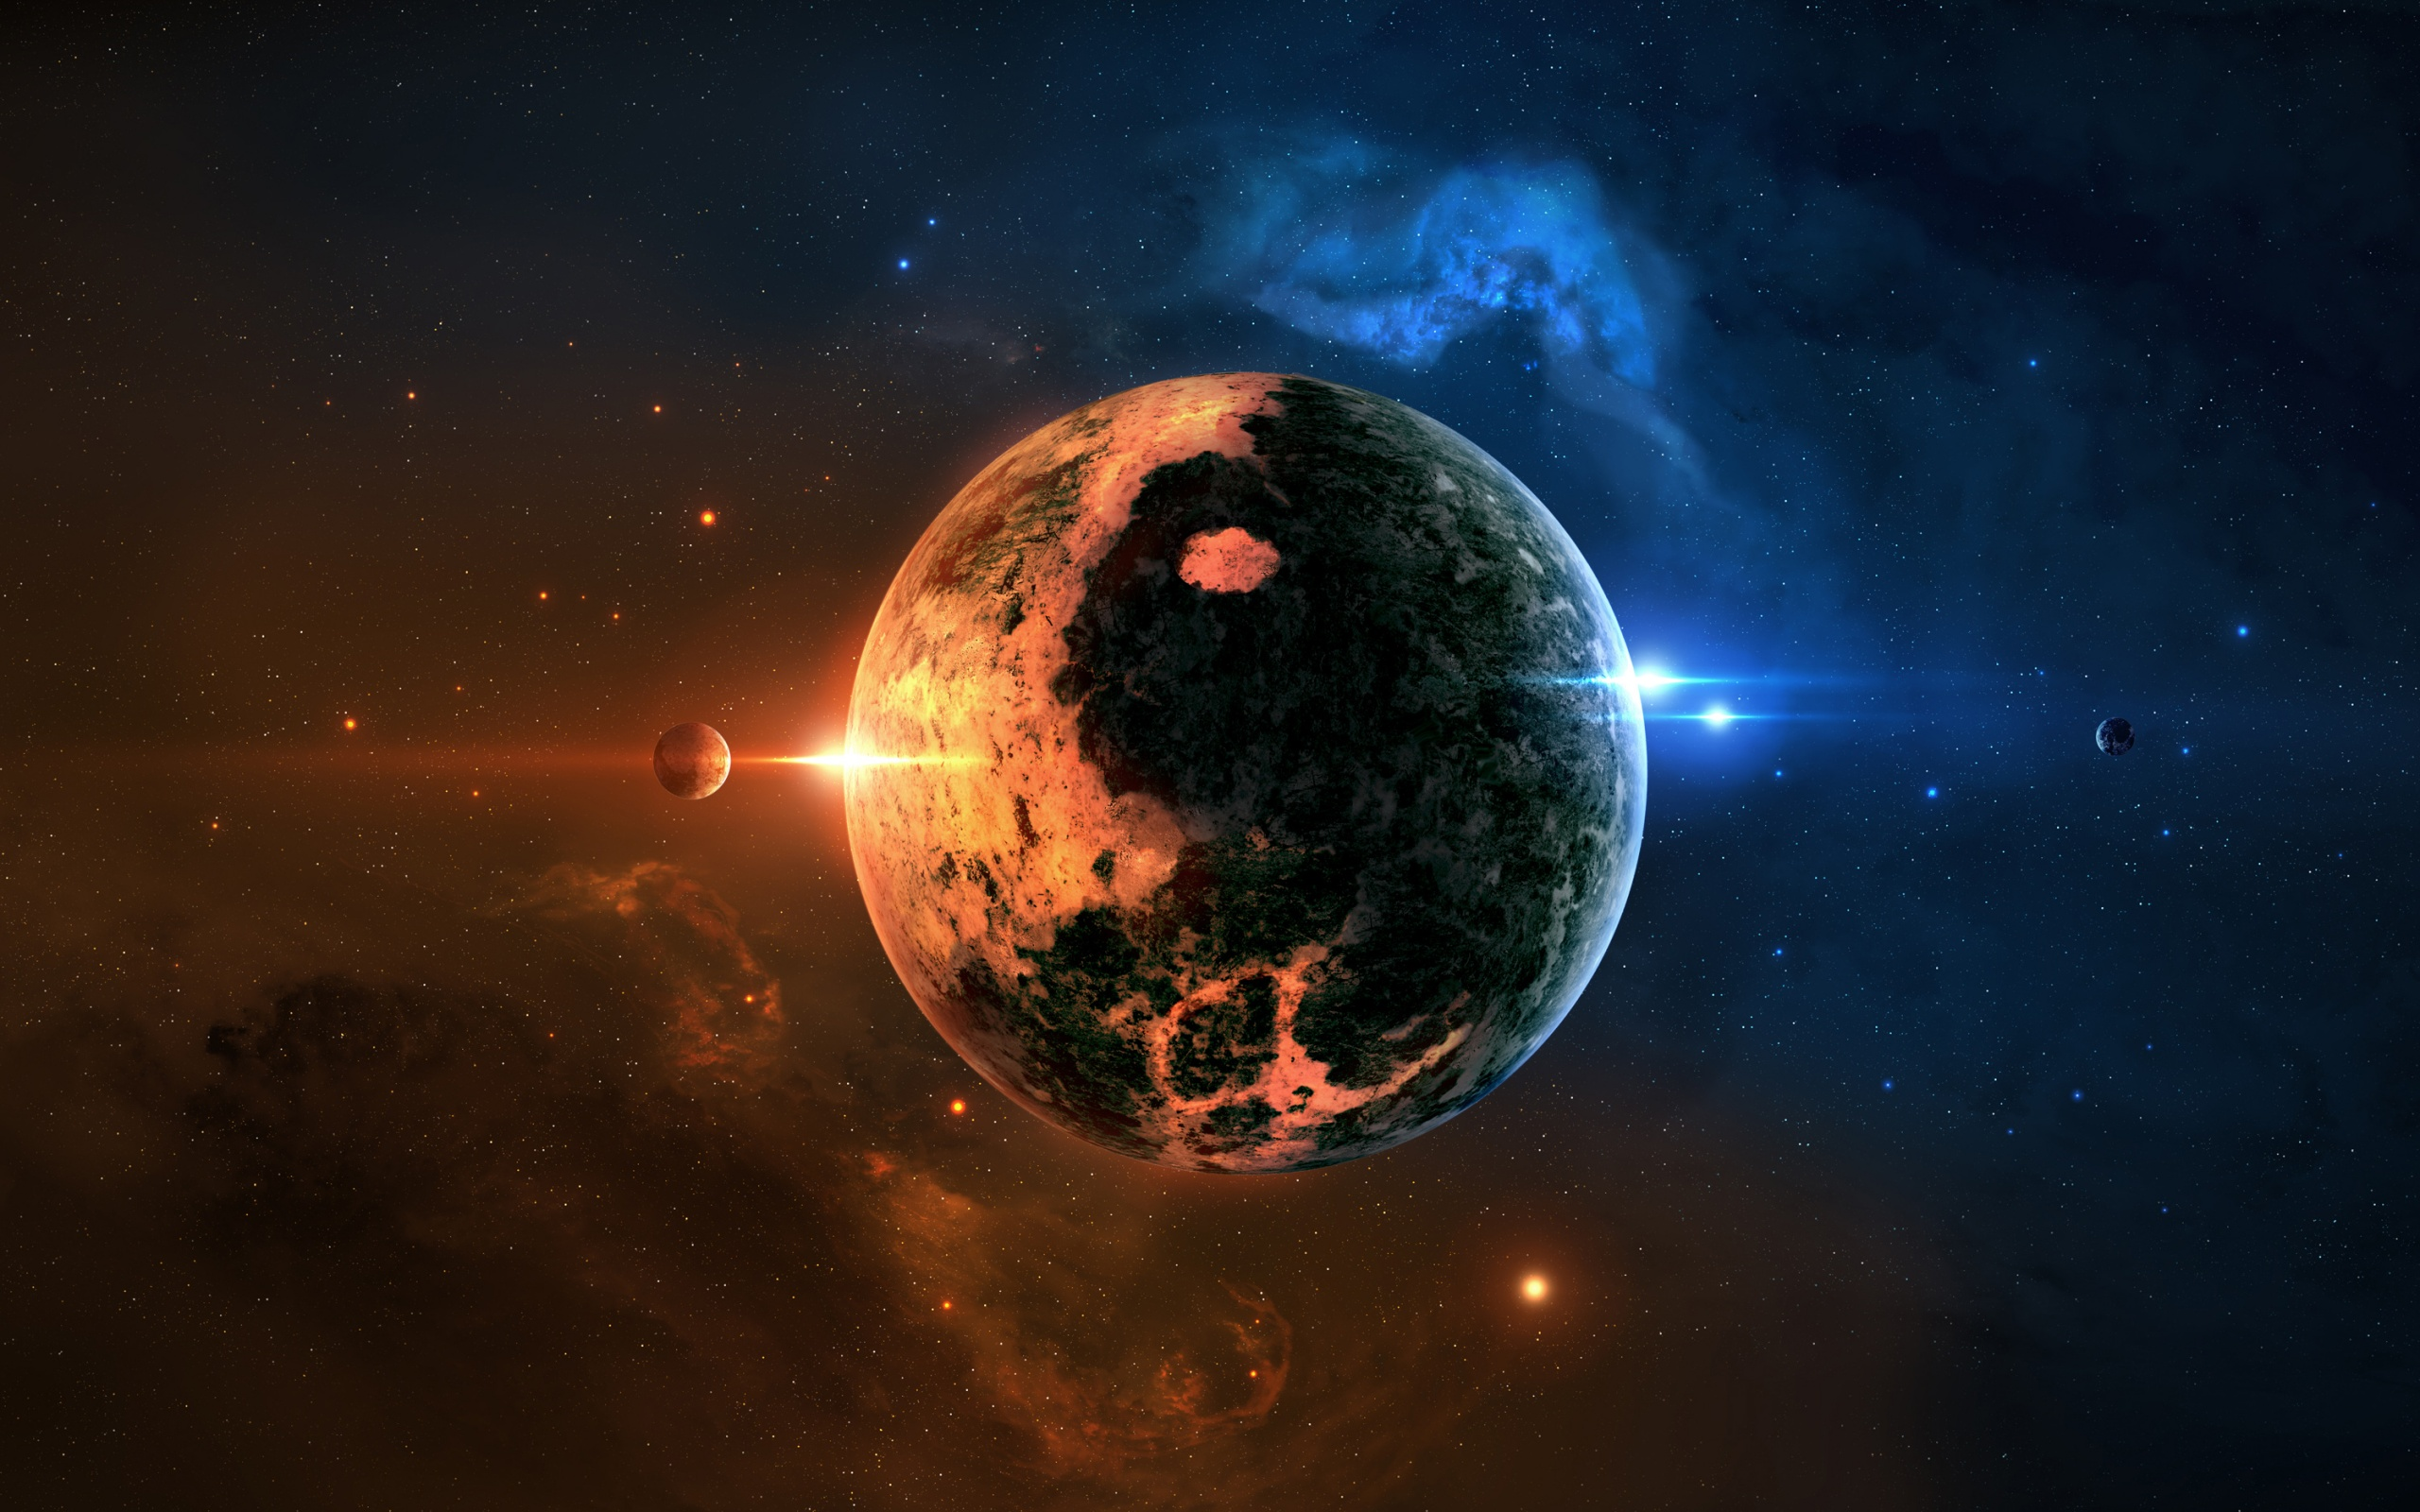 Planet Art Wallpapers Pictures Photos Images. «